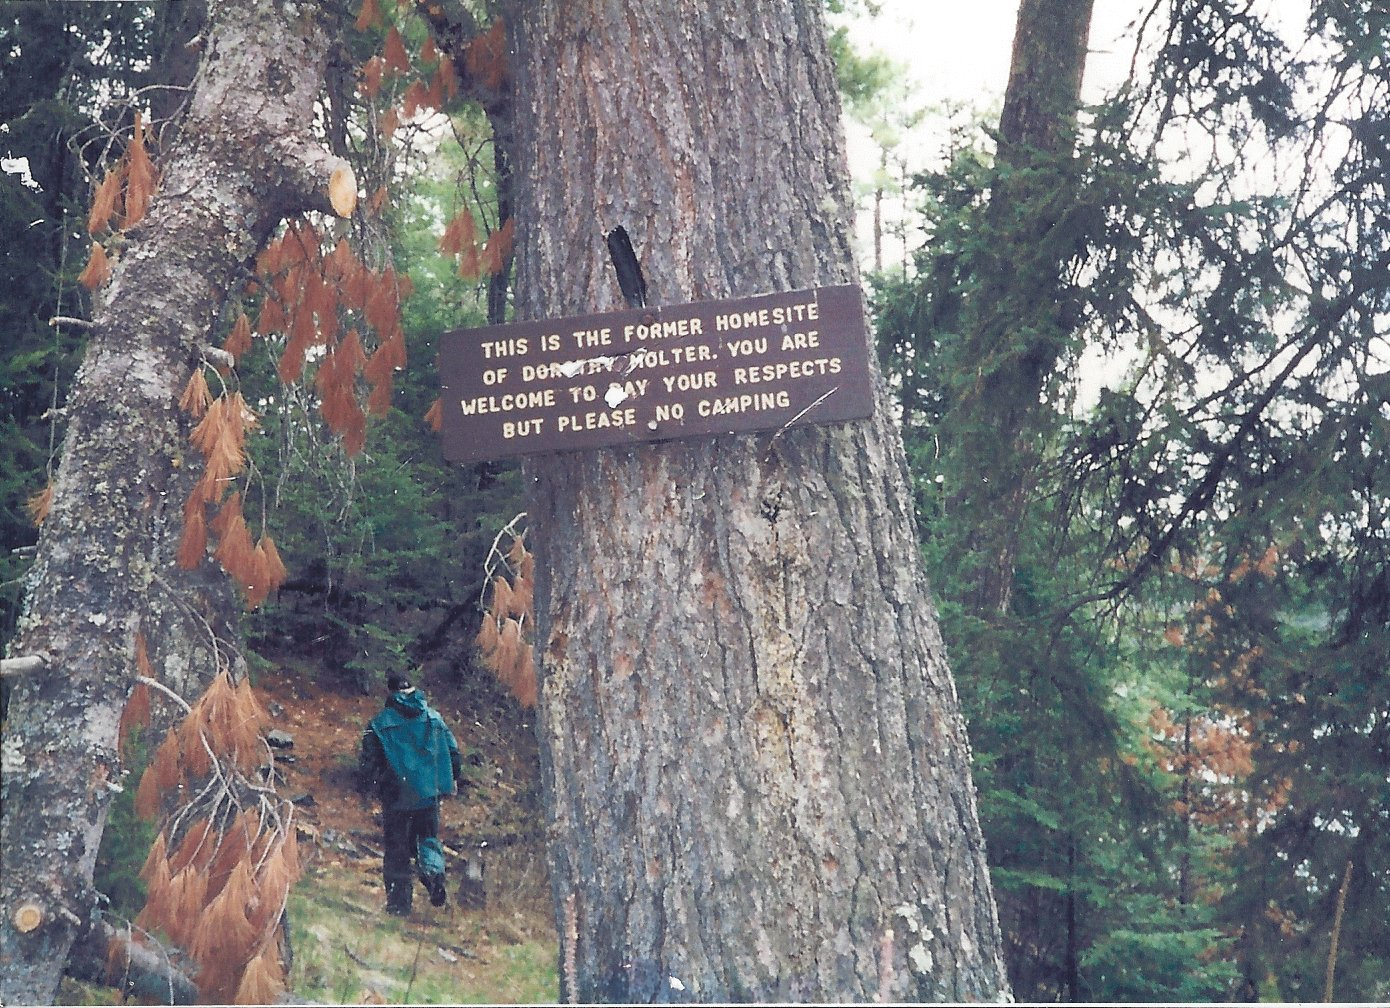 USFS sign after Dorothy died in 1986